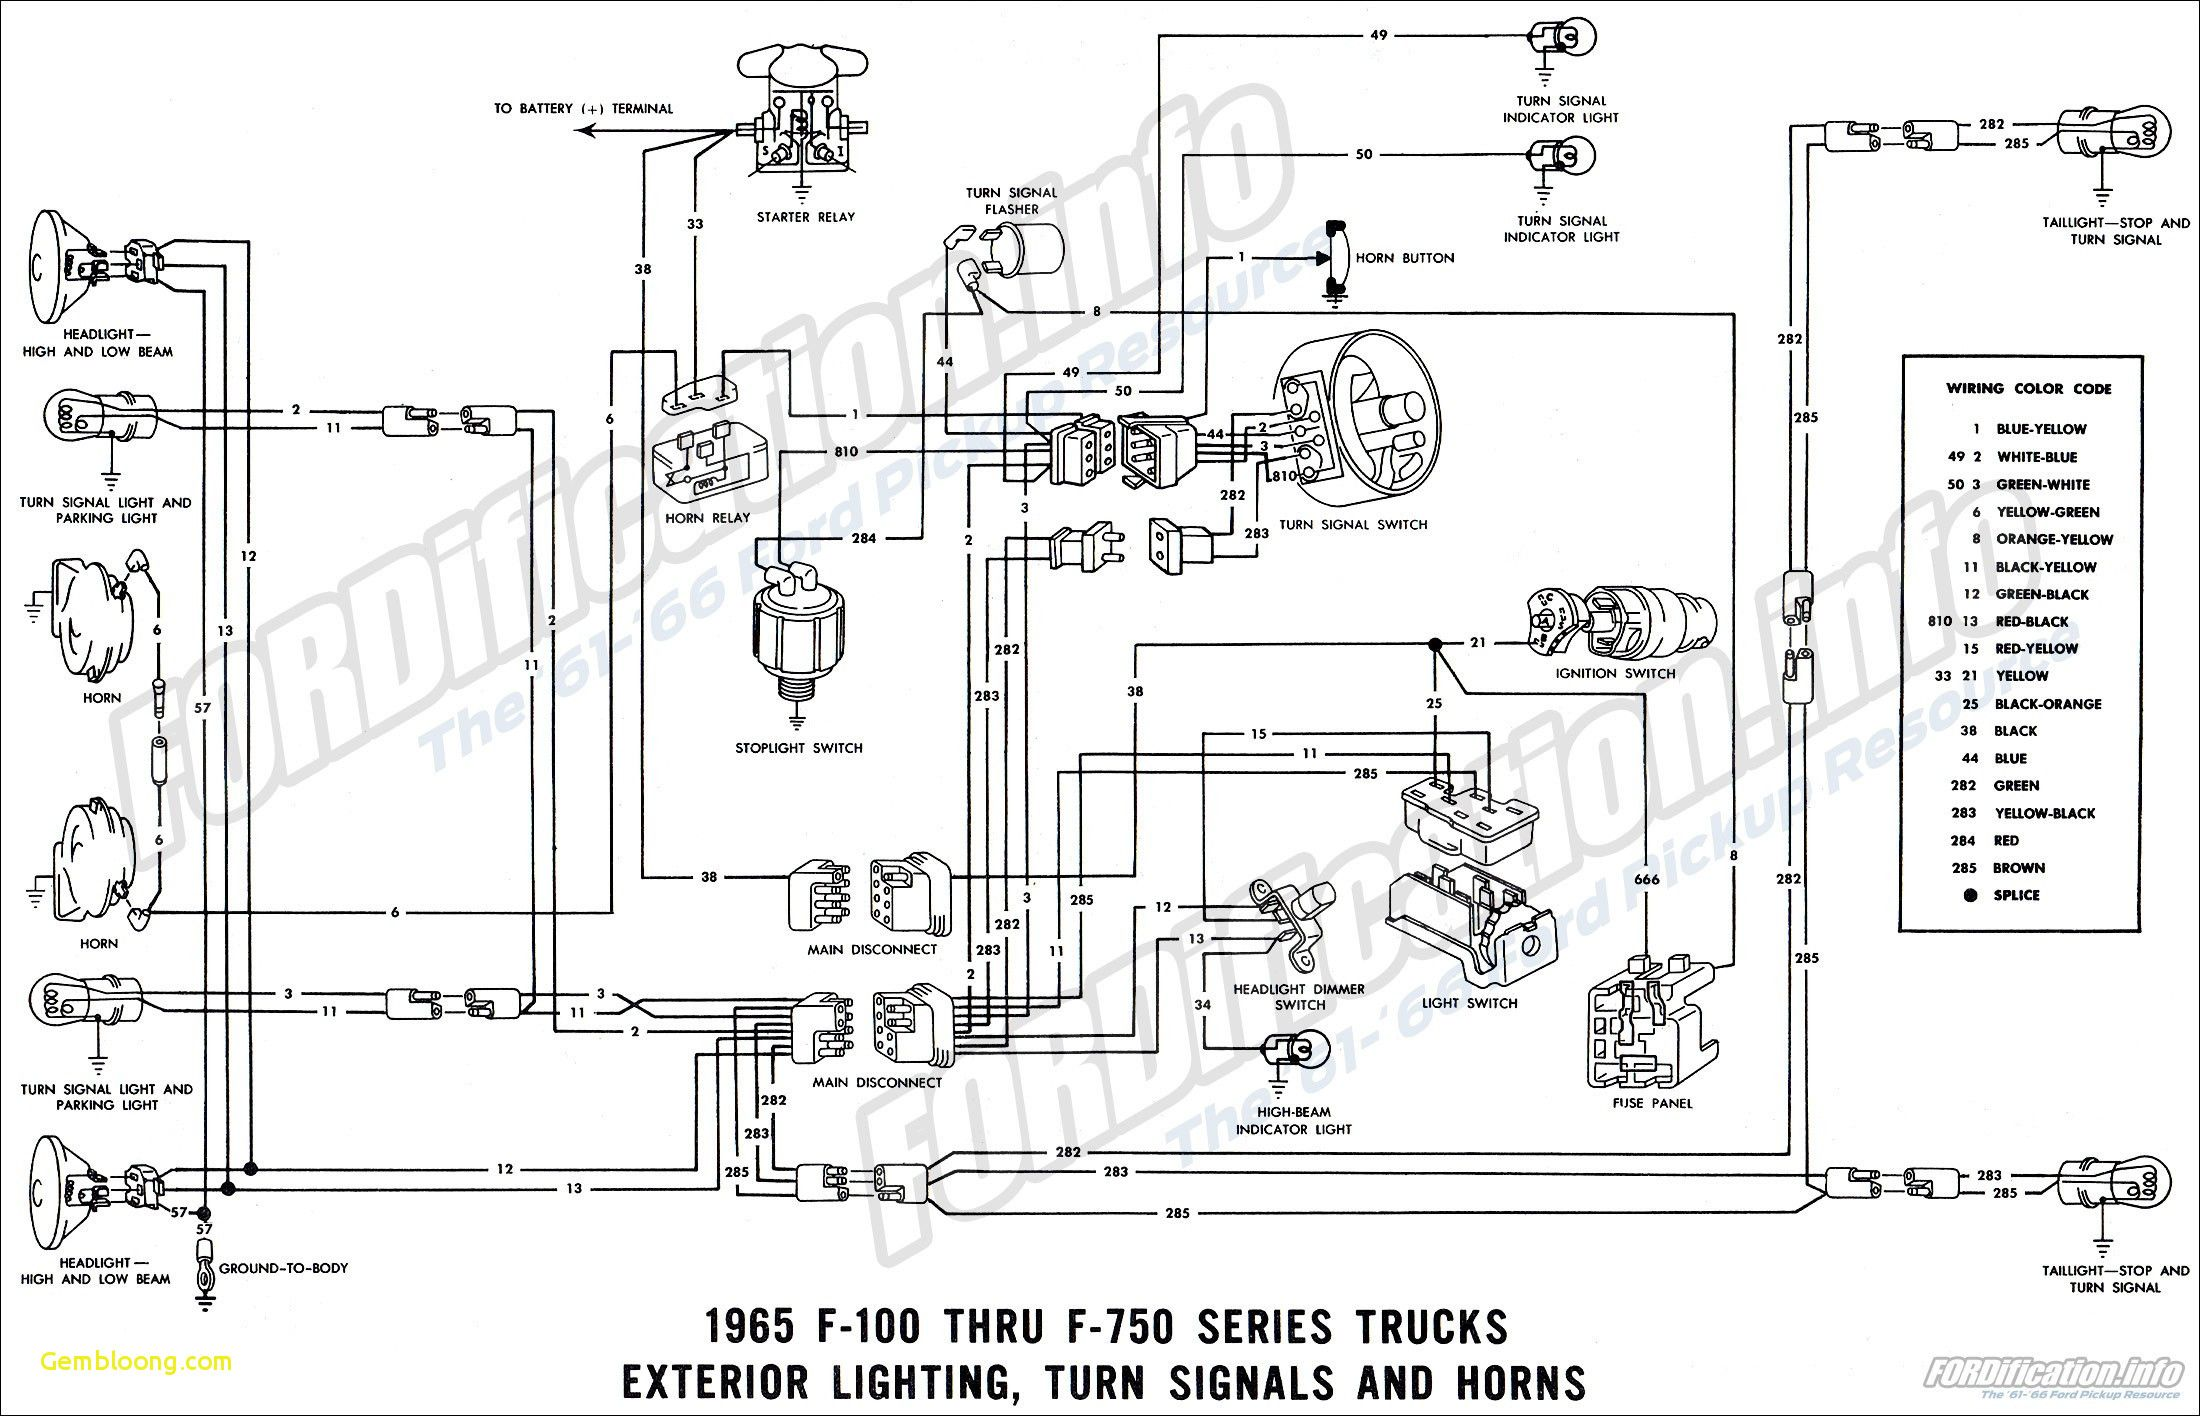 Diagram 1953 Ford F100 Turn Signal Wiring Diagram Full Version Hd Quality Wiring Diagram Sato Yti Fr